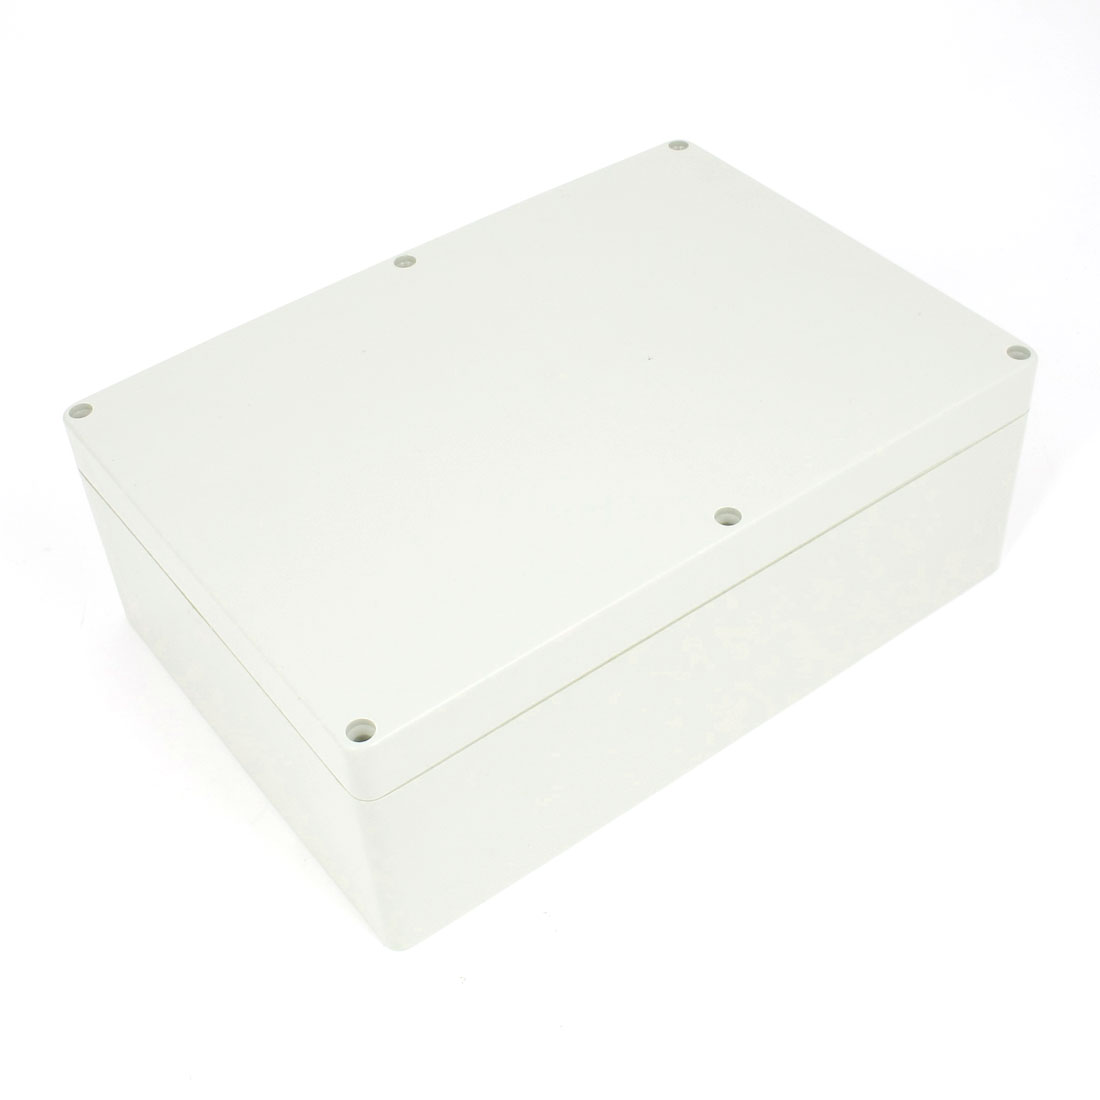 Cable Connect Electric Project Case Junction Box 264 x 185 x 94mm